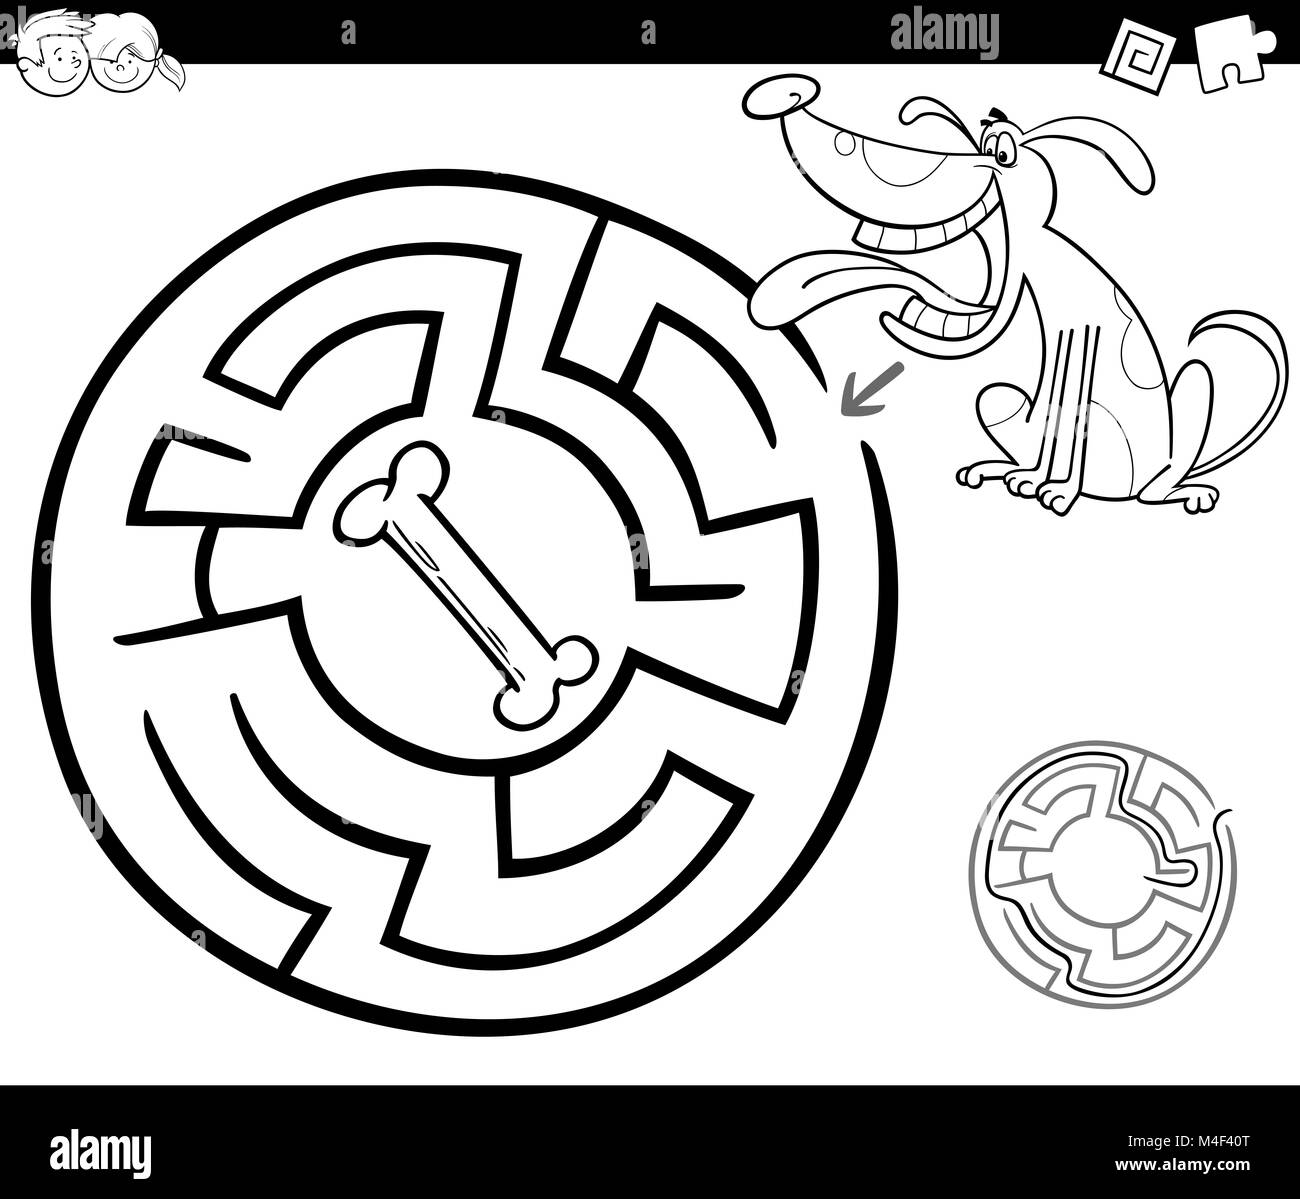 Maze with dog coloring page stock photo 174894744 alamy